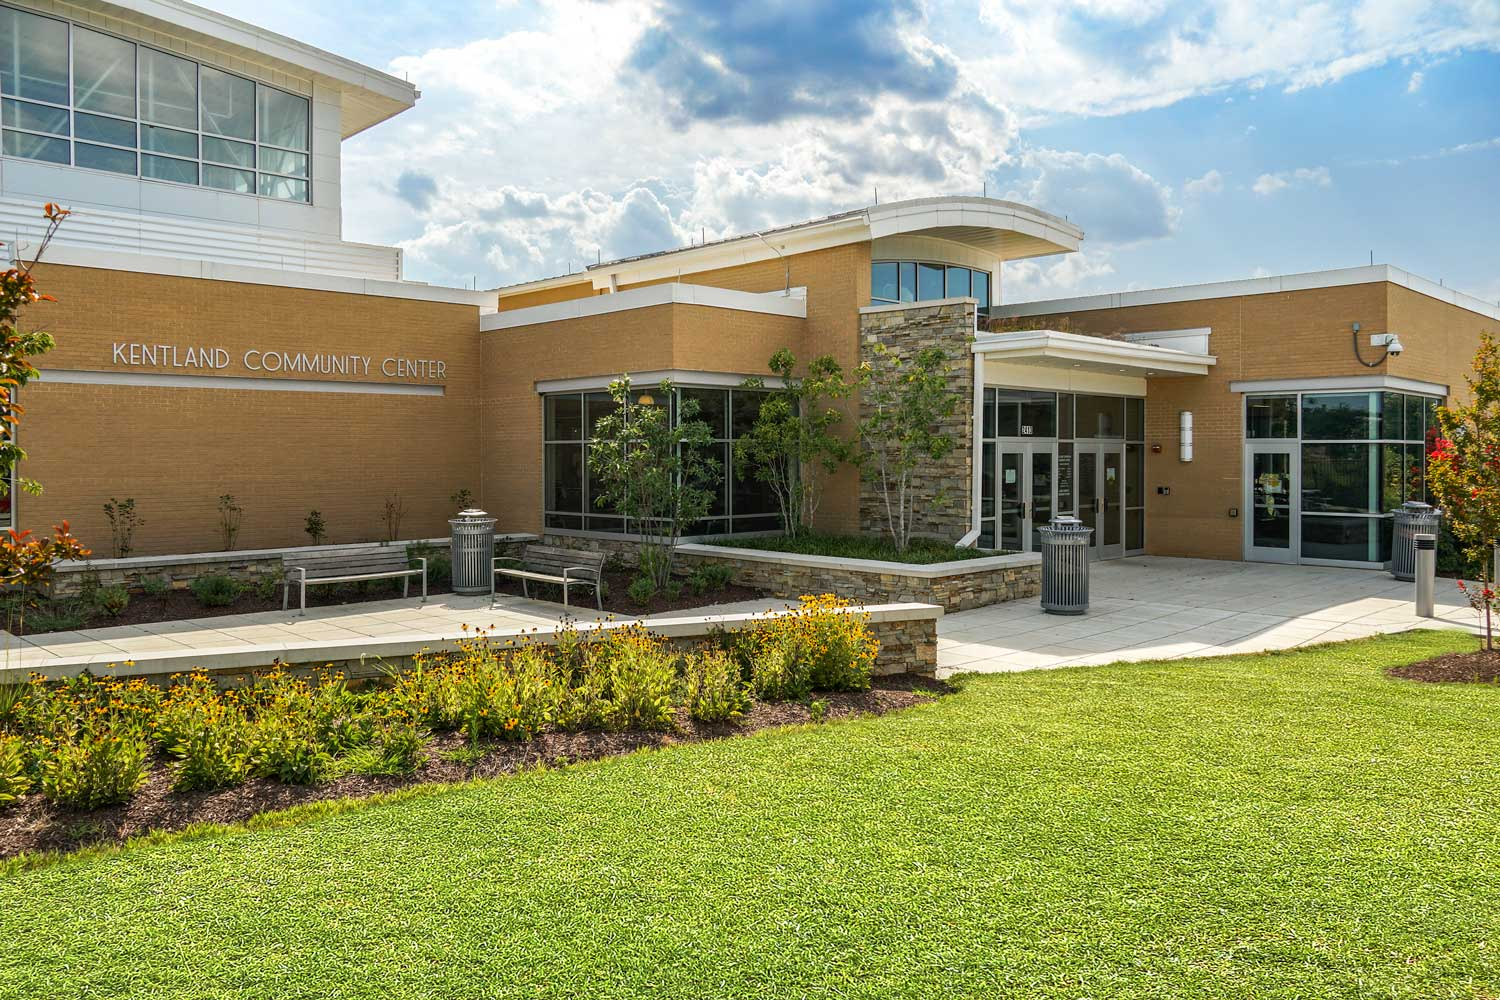 Kentland Community Center is 5 minutes from Columbia Park Apartments